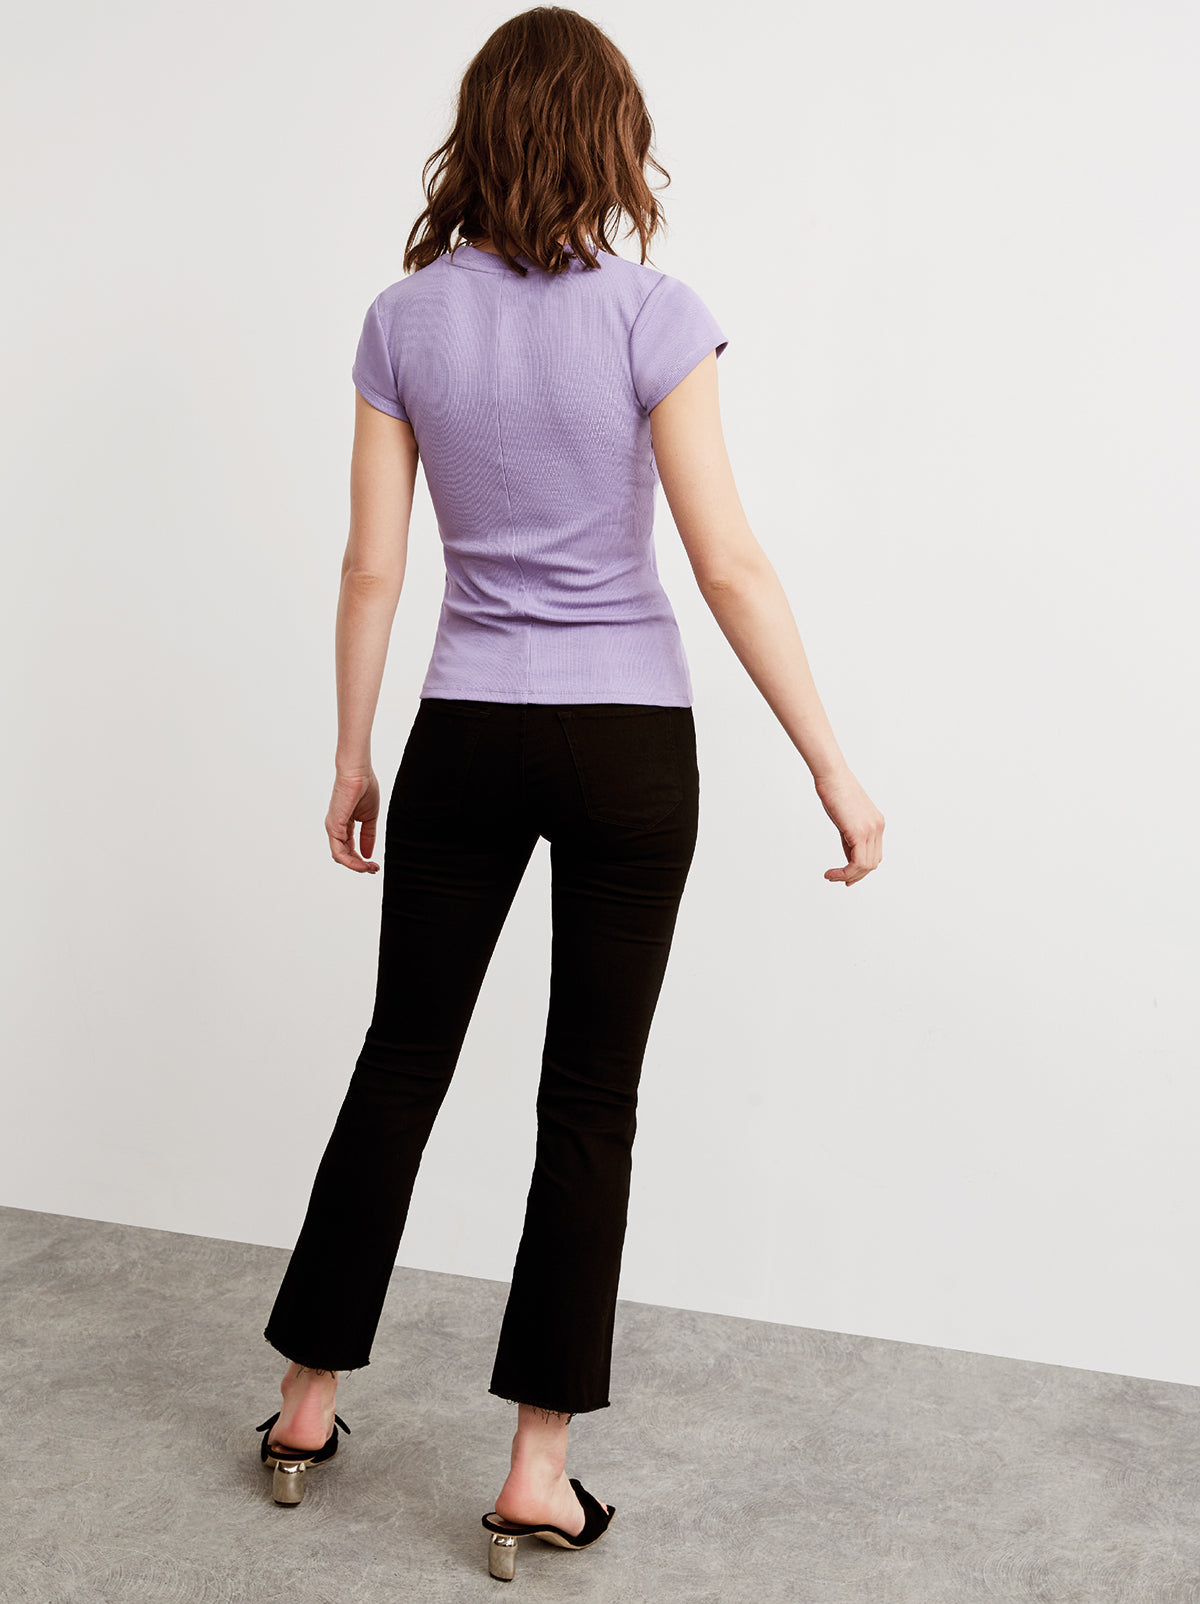 Rumi Lilac Ribbed Crew Neck T-Shirt by KITRI Studio